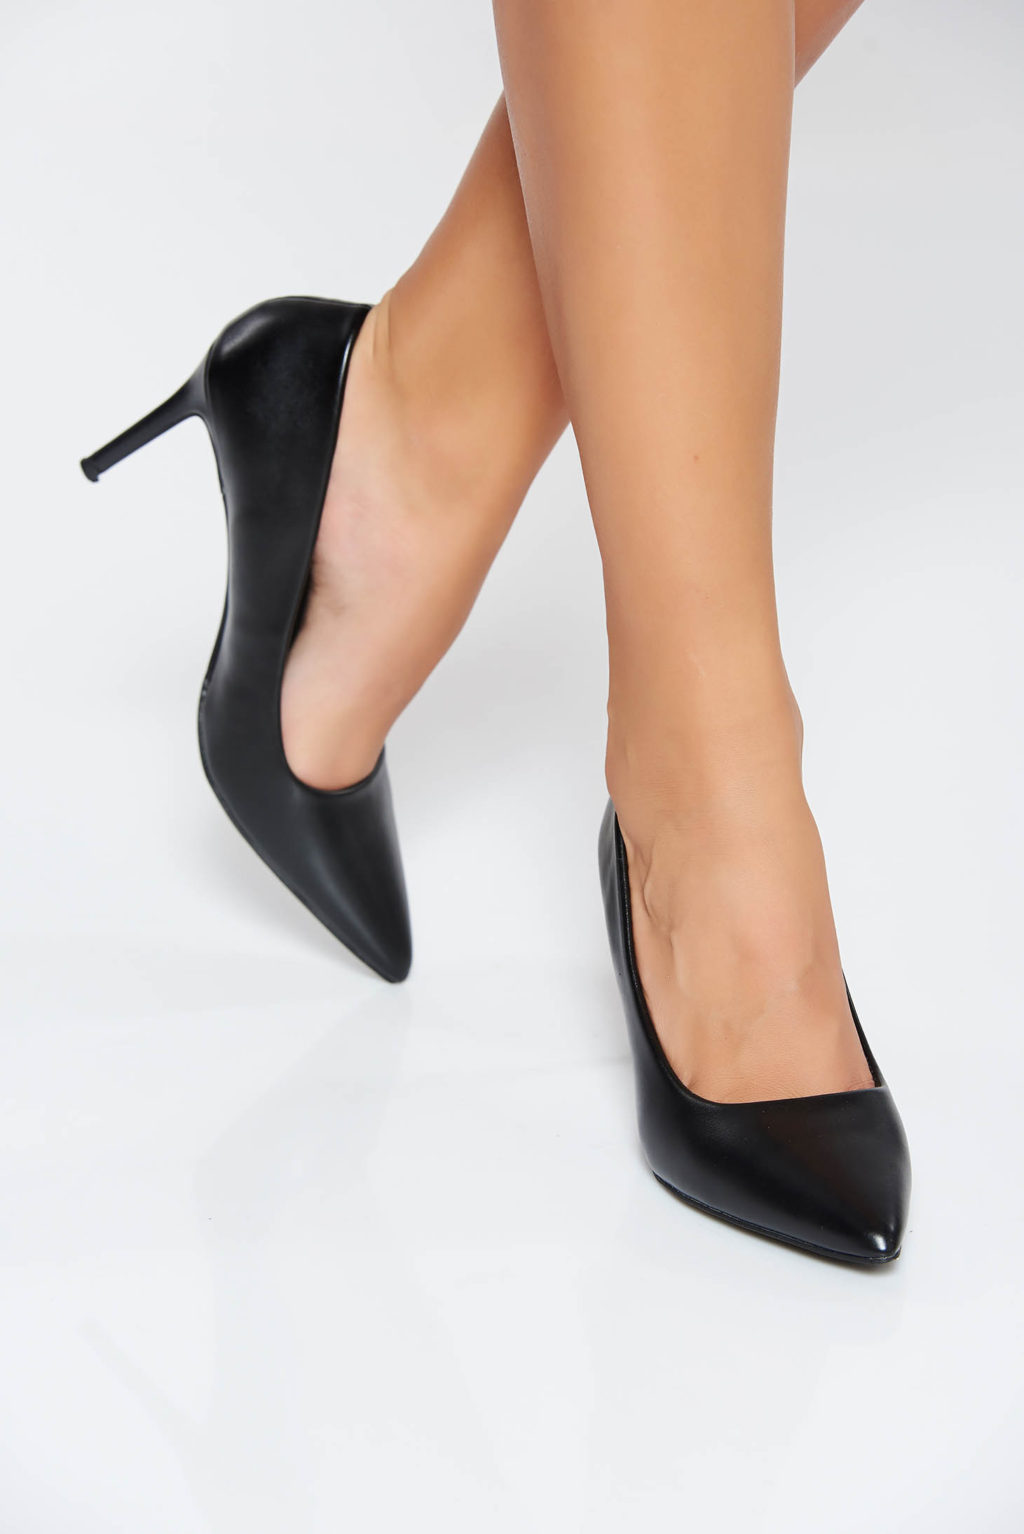 Pointy-Toe-Shoes-1024x1534 Top 10 Outdated Fashion and Clothing Trends to Avoid in 2021